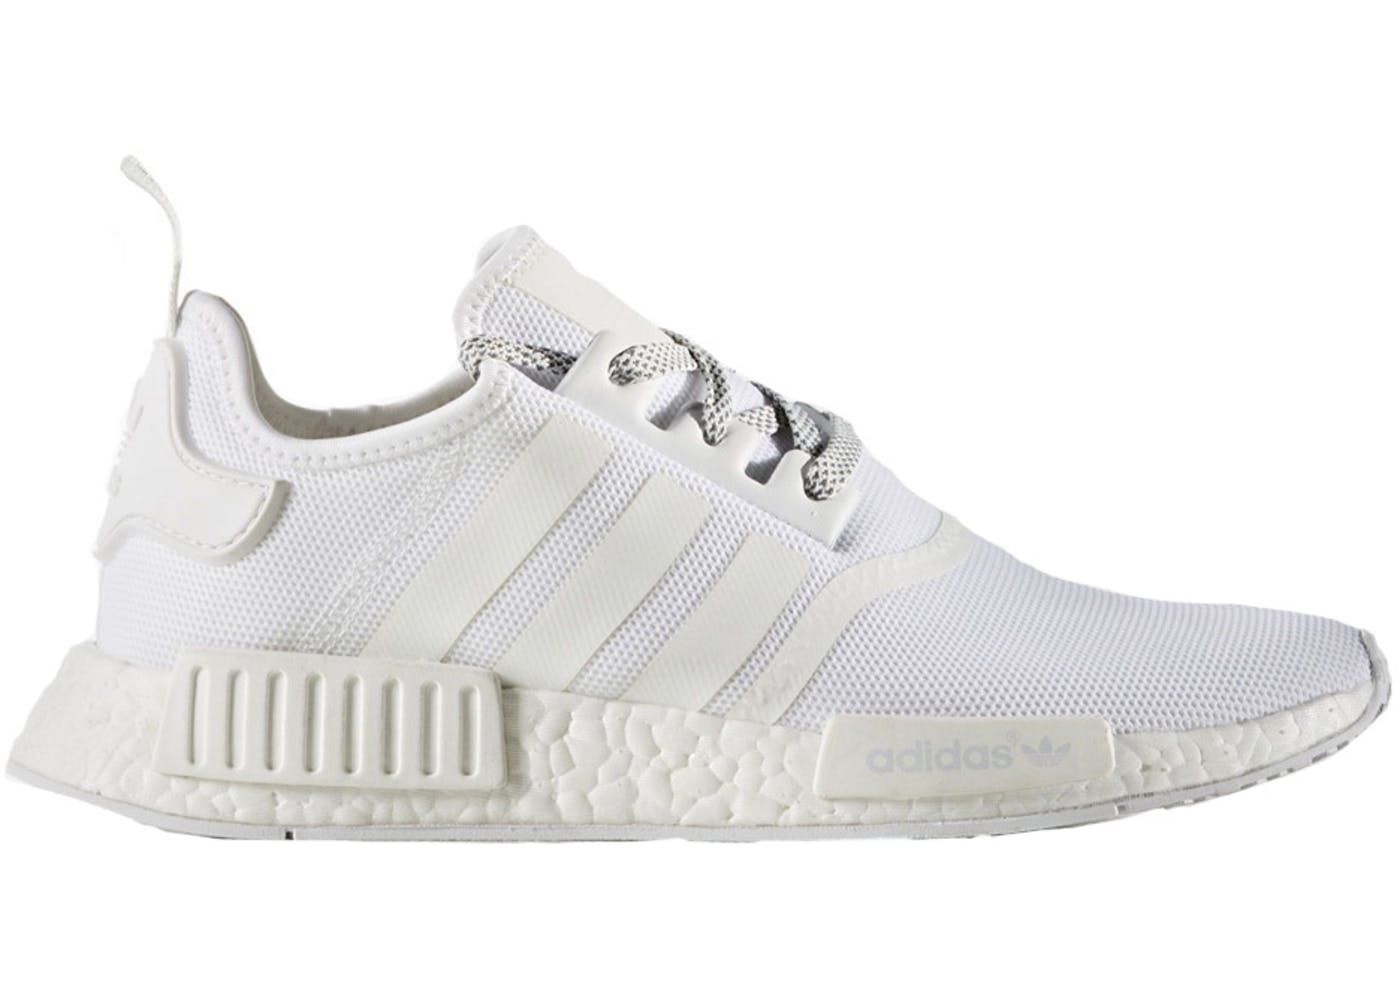 Cheap Adidas NMD Runner Shoes Cheap Adidas Shoes Hibbett Sports